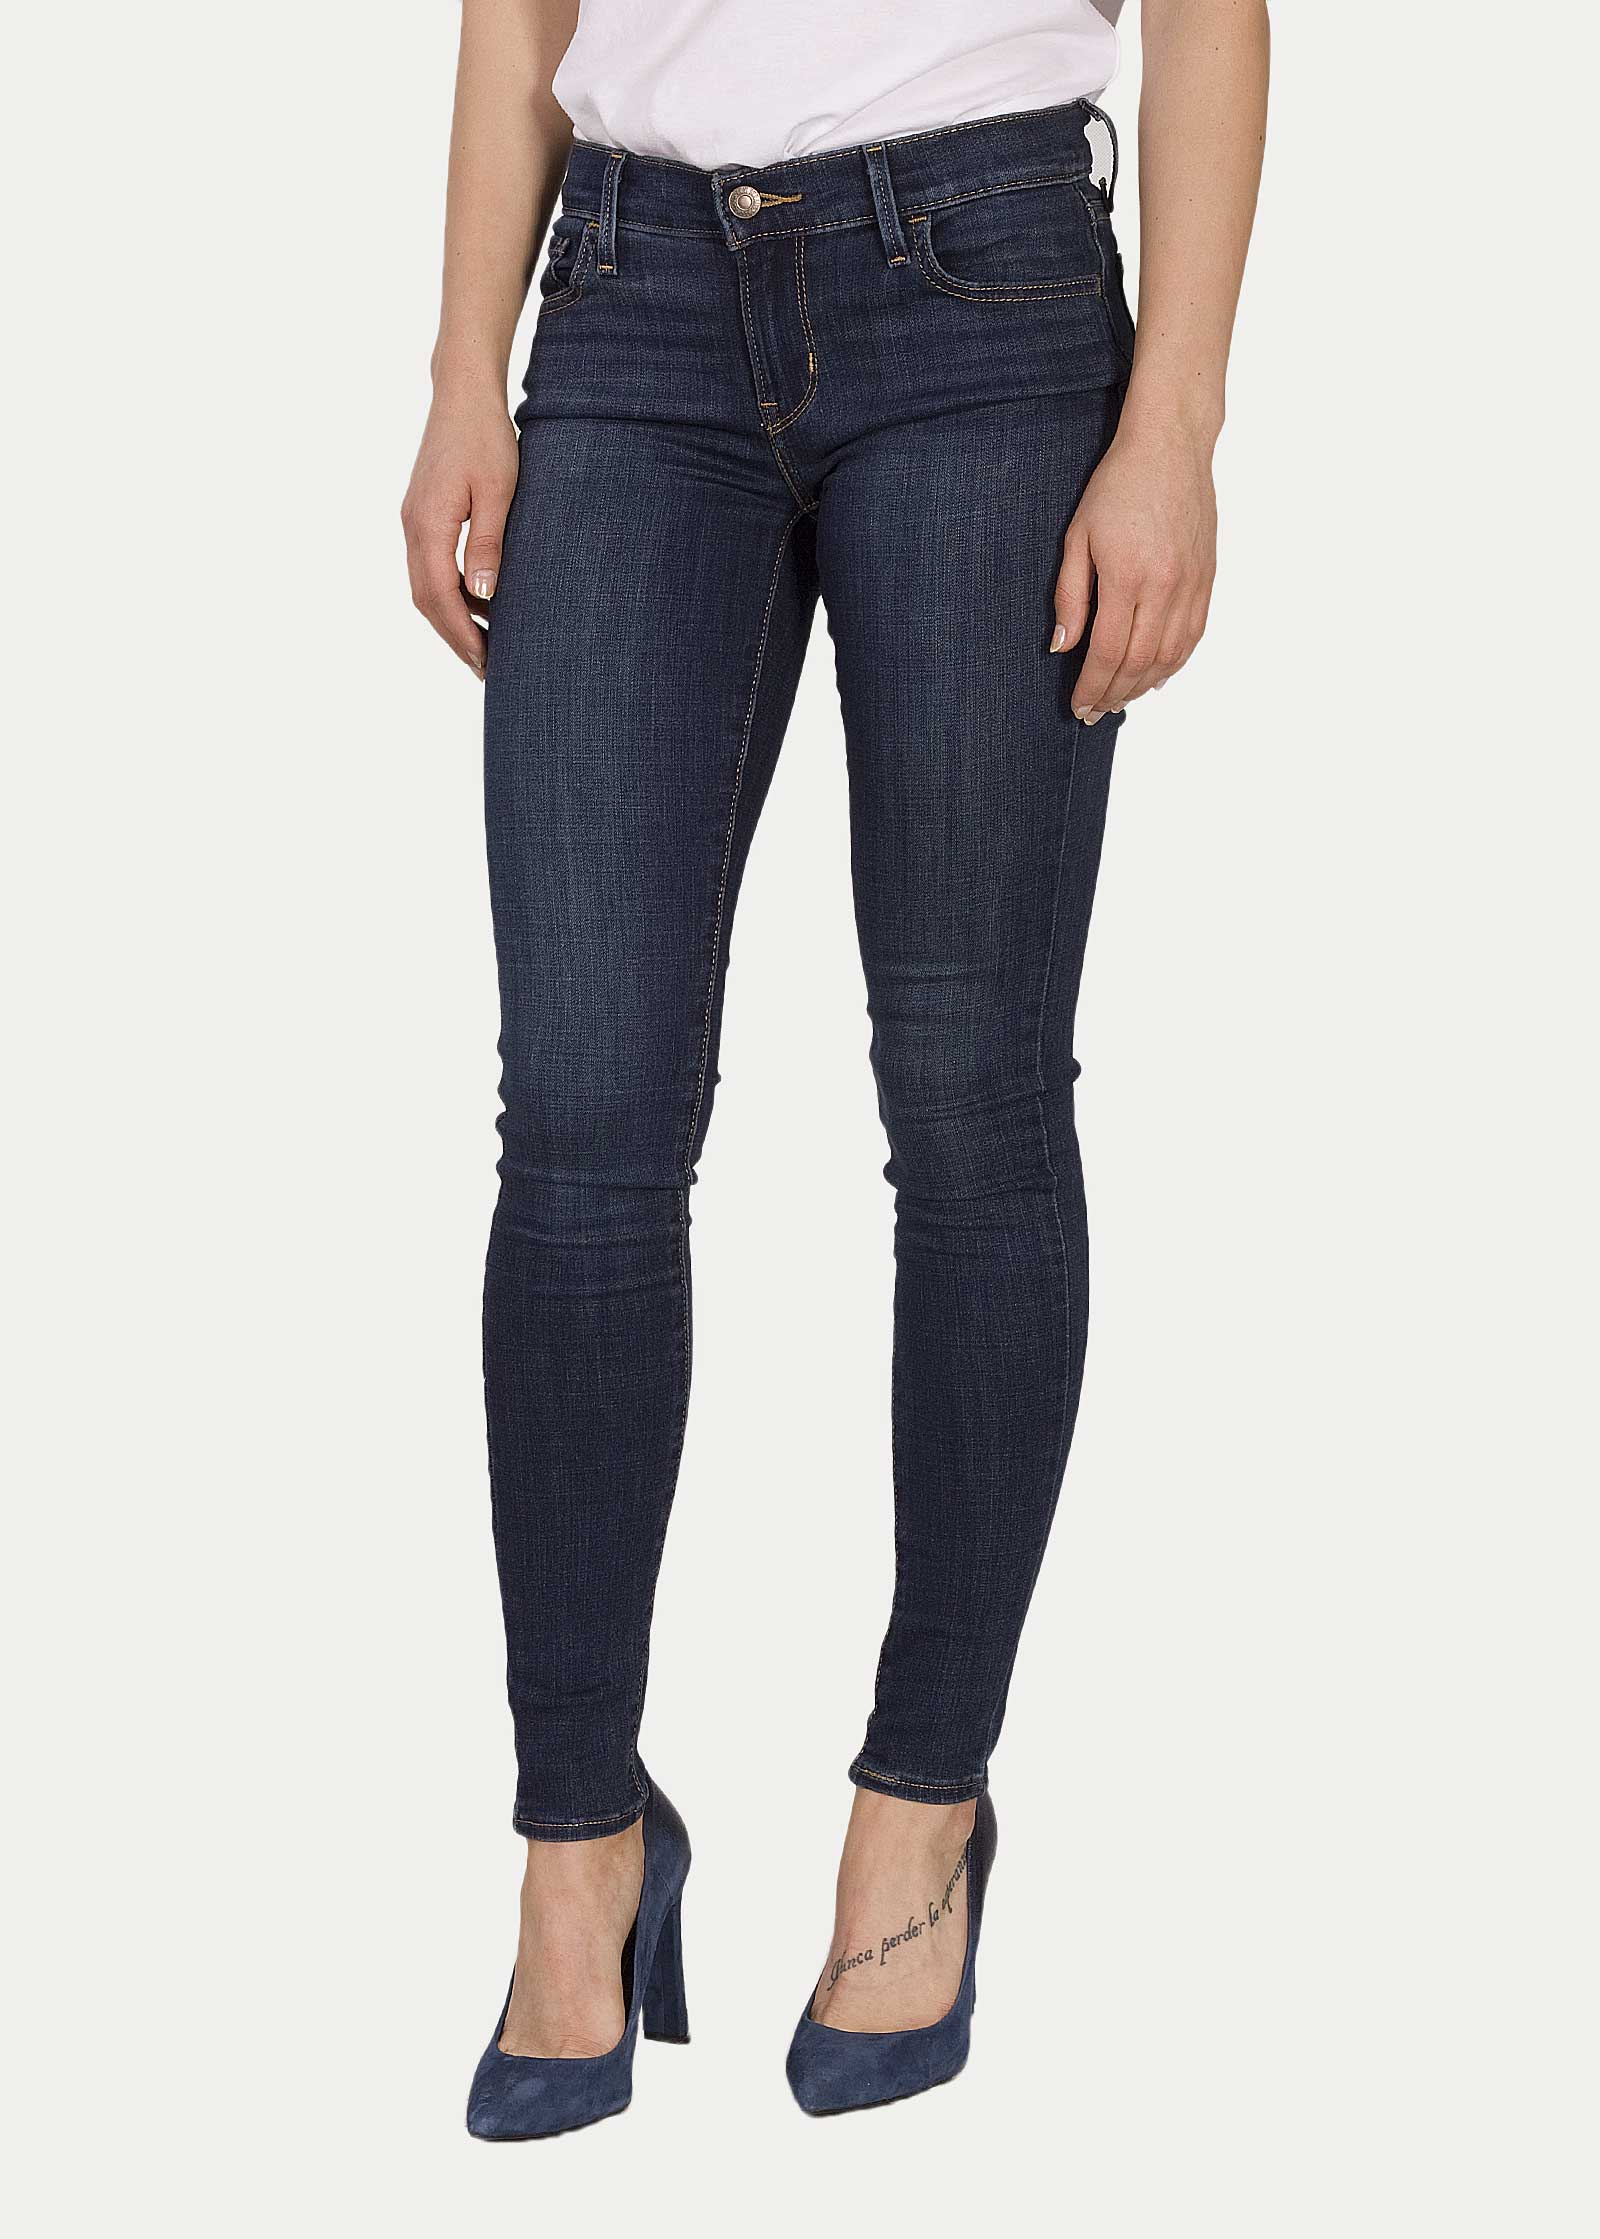 9f489d8ba66 JEANS 710 MUJER LEVI´S